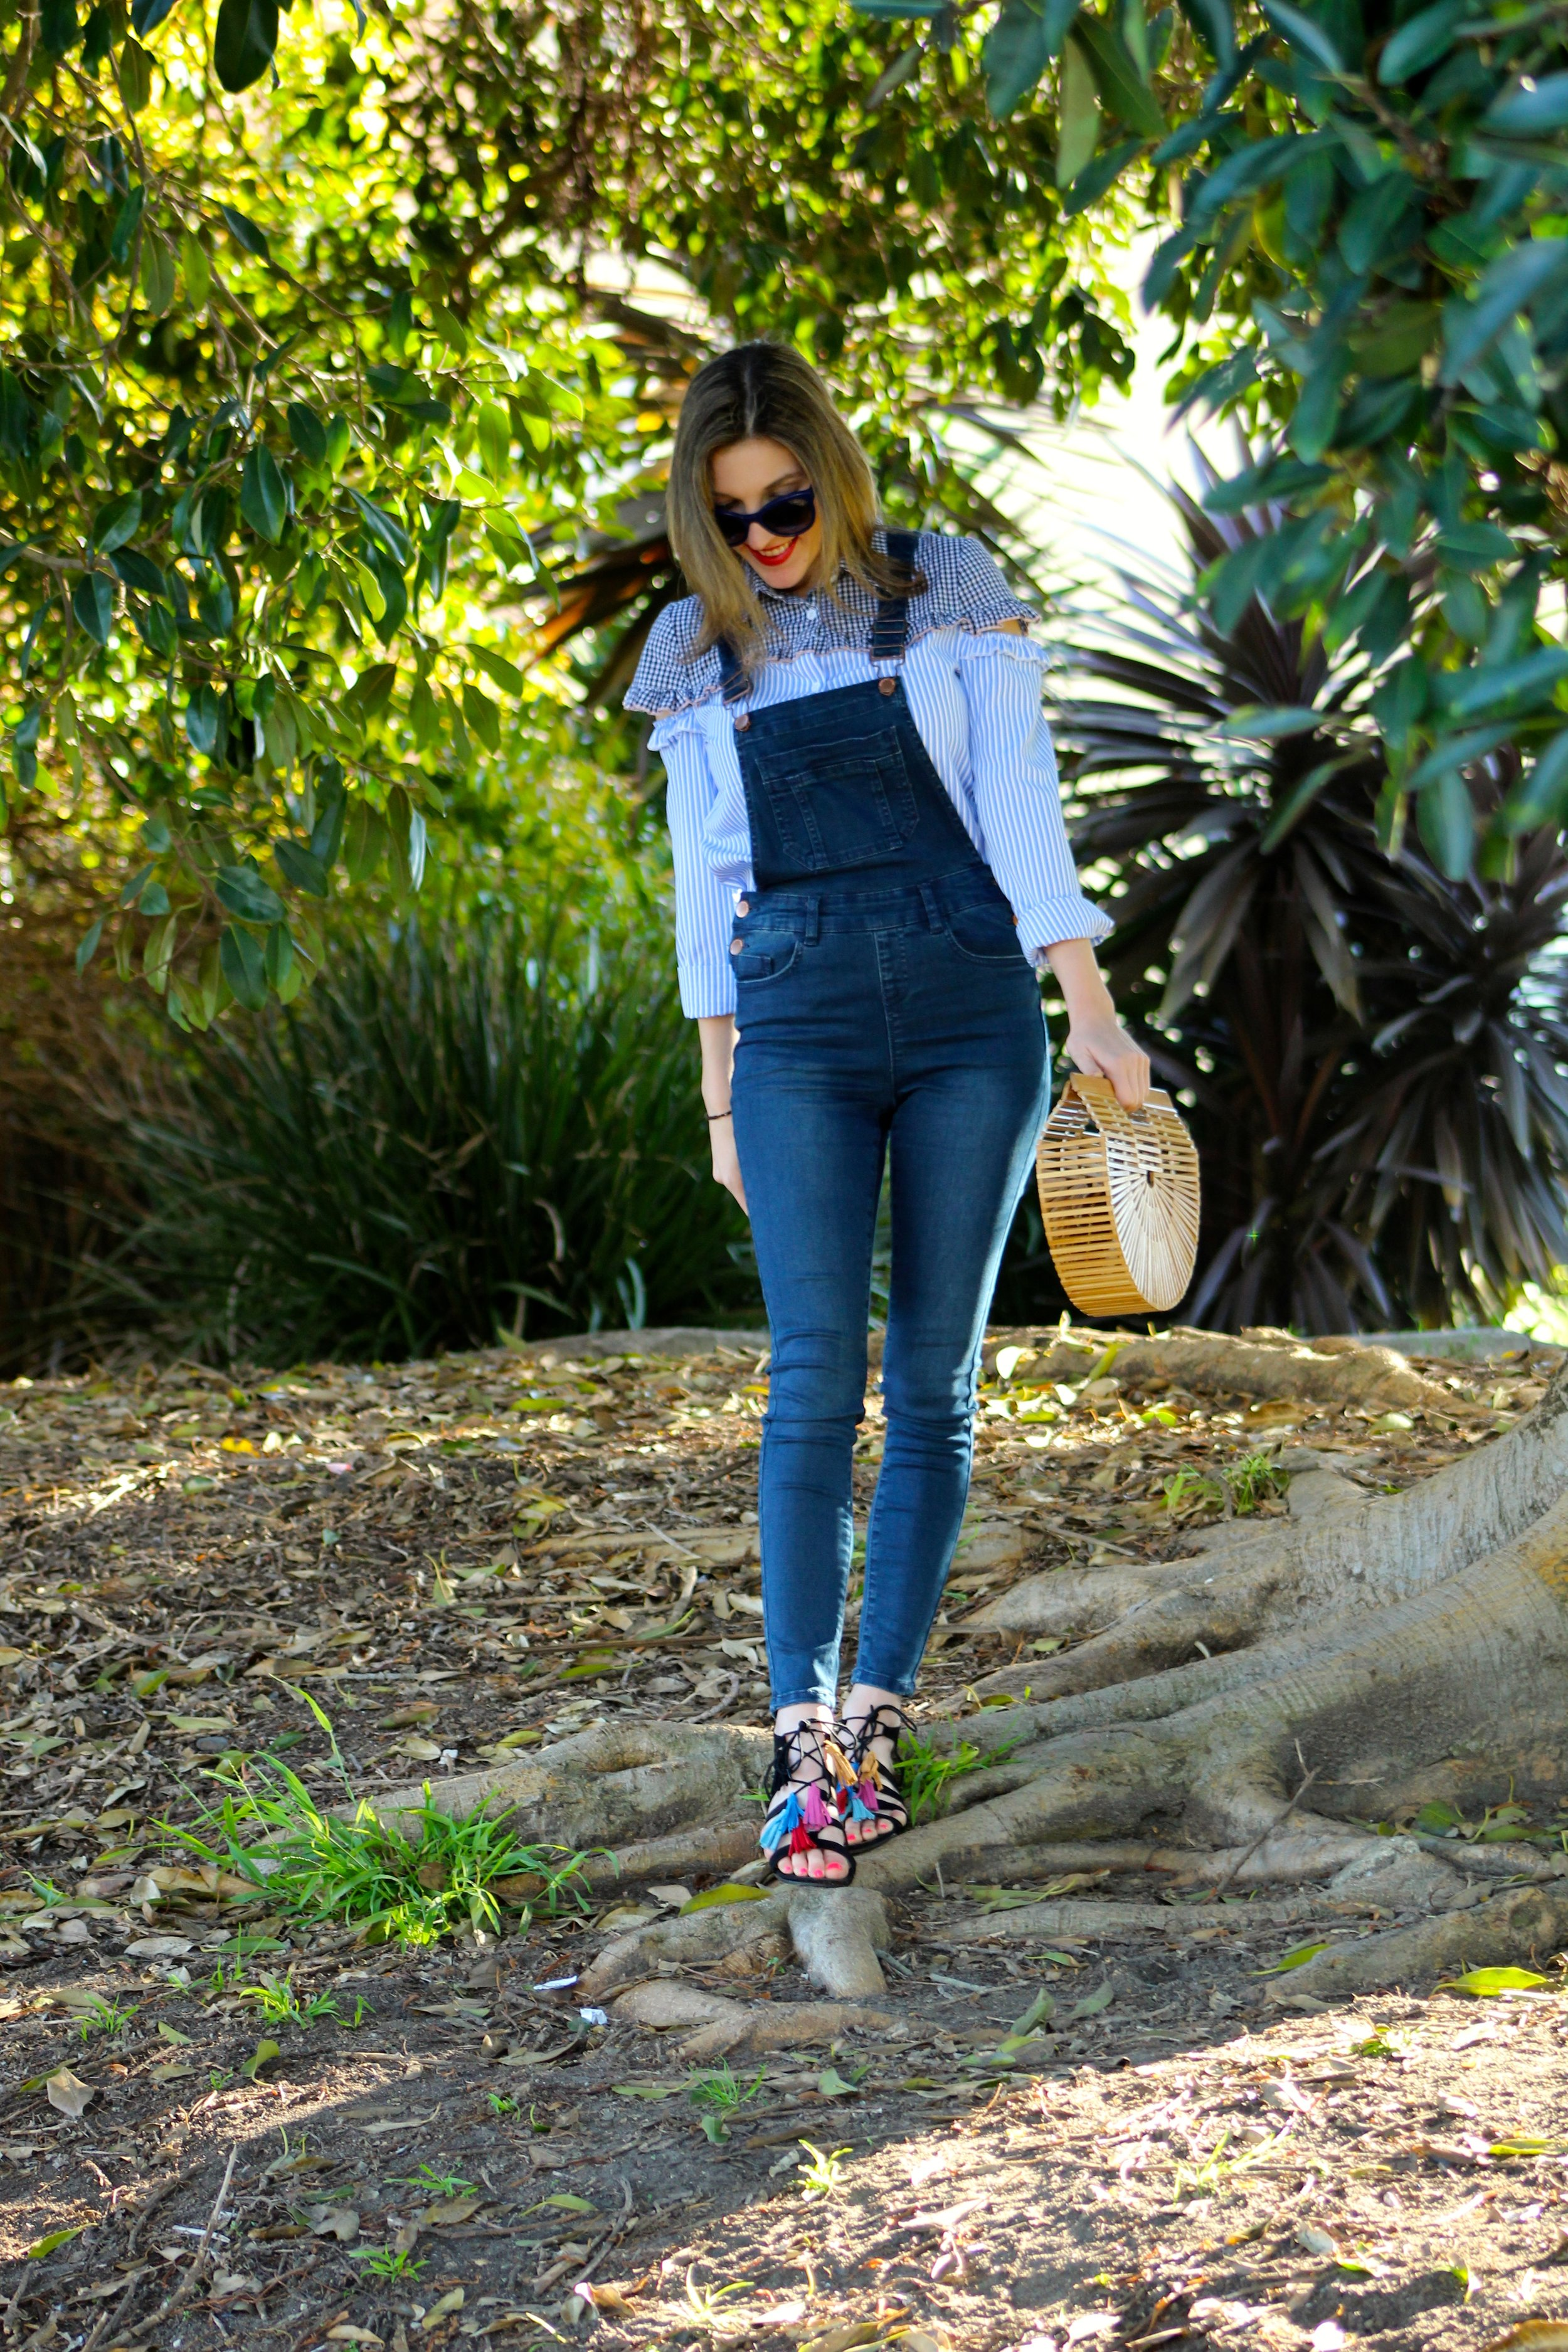 Top :  Shein  //  Overalls : Asos,  similar here  //  Shoes : Forever 21,  similar here //  Bag :  Cult Gaia  //  Sunglasses :  Chanel    Yay! It's Friday! I am excited to share this post with you guys today! I have been talking a lot about   Shein.com   recently but only because I have been finding soooo many goodies on their site! This gingham top is so unique, I love it! The detail cutouts, the different patterns and the ruffles are just so one of a kind. This shirt definitely has a lot going on so I wanted to pair it with something more toned down and simple. I love overalls! I have talked about them time and time again on the blog. They are just so easy peasy- but so on trend! If you love unique stand out tops like me, I have linked a few more of my picks  here ,  here , and  here . I wanted to keep the fun going with this outfit, so I added some colorful fringed sandals and my favorite bamboo clutch! Make sure you guys head to   Shein.com     to find a variety of fashionable items that you are sure to turn heads in! Happy Shopping!  Have a lovely weekend friends!  ~ Nicole   Thank you to Shein.com for sponsoring this post.